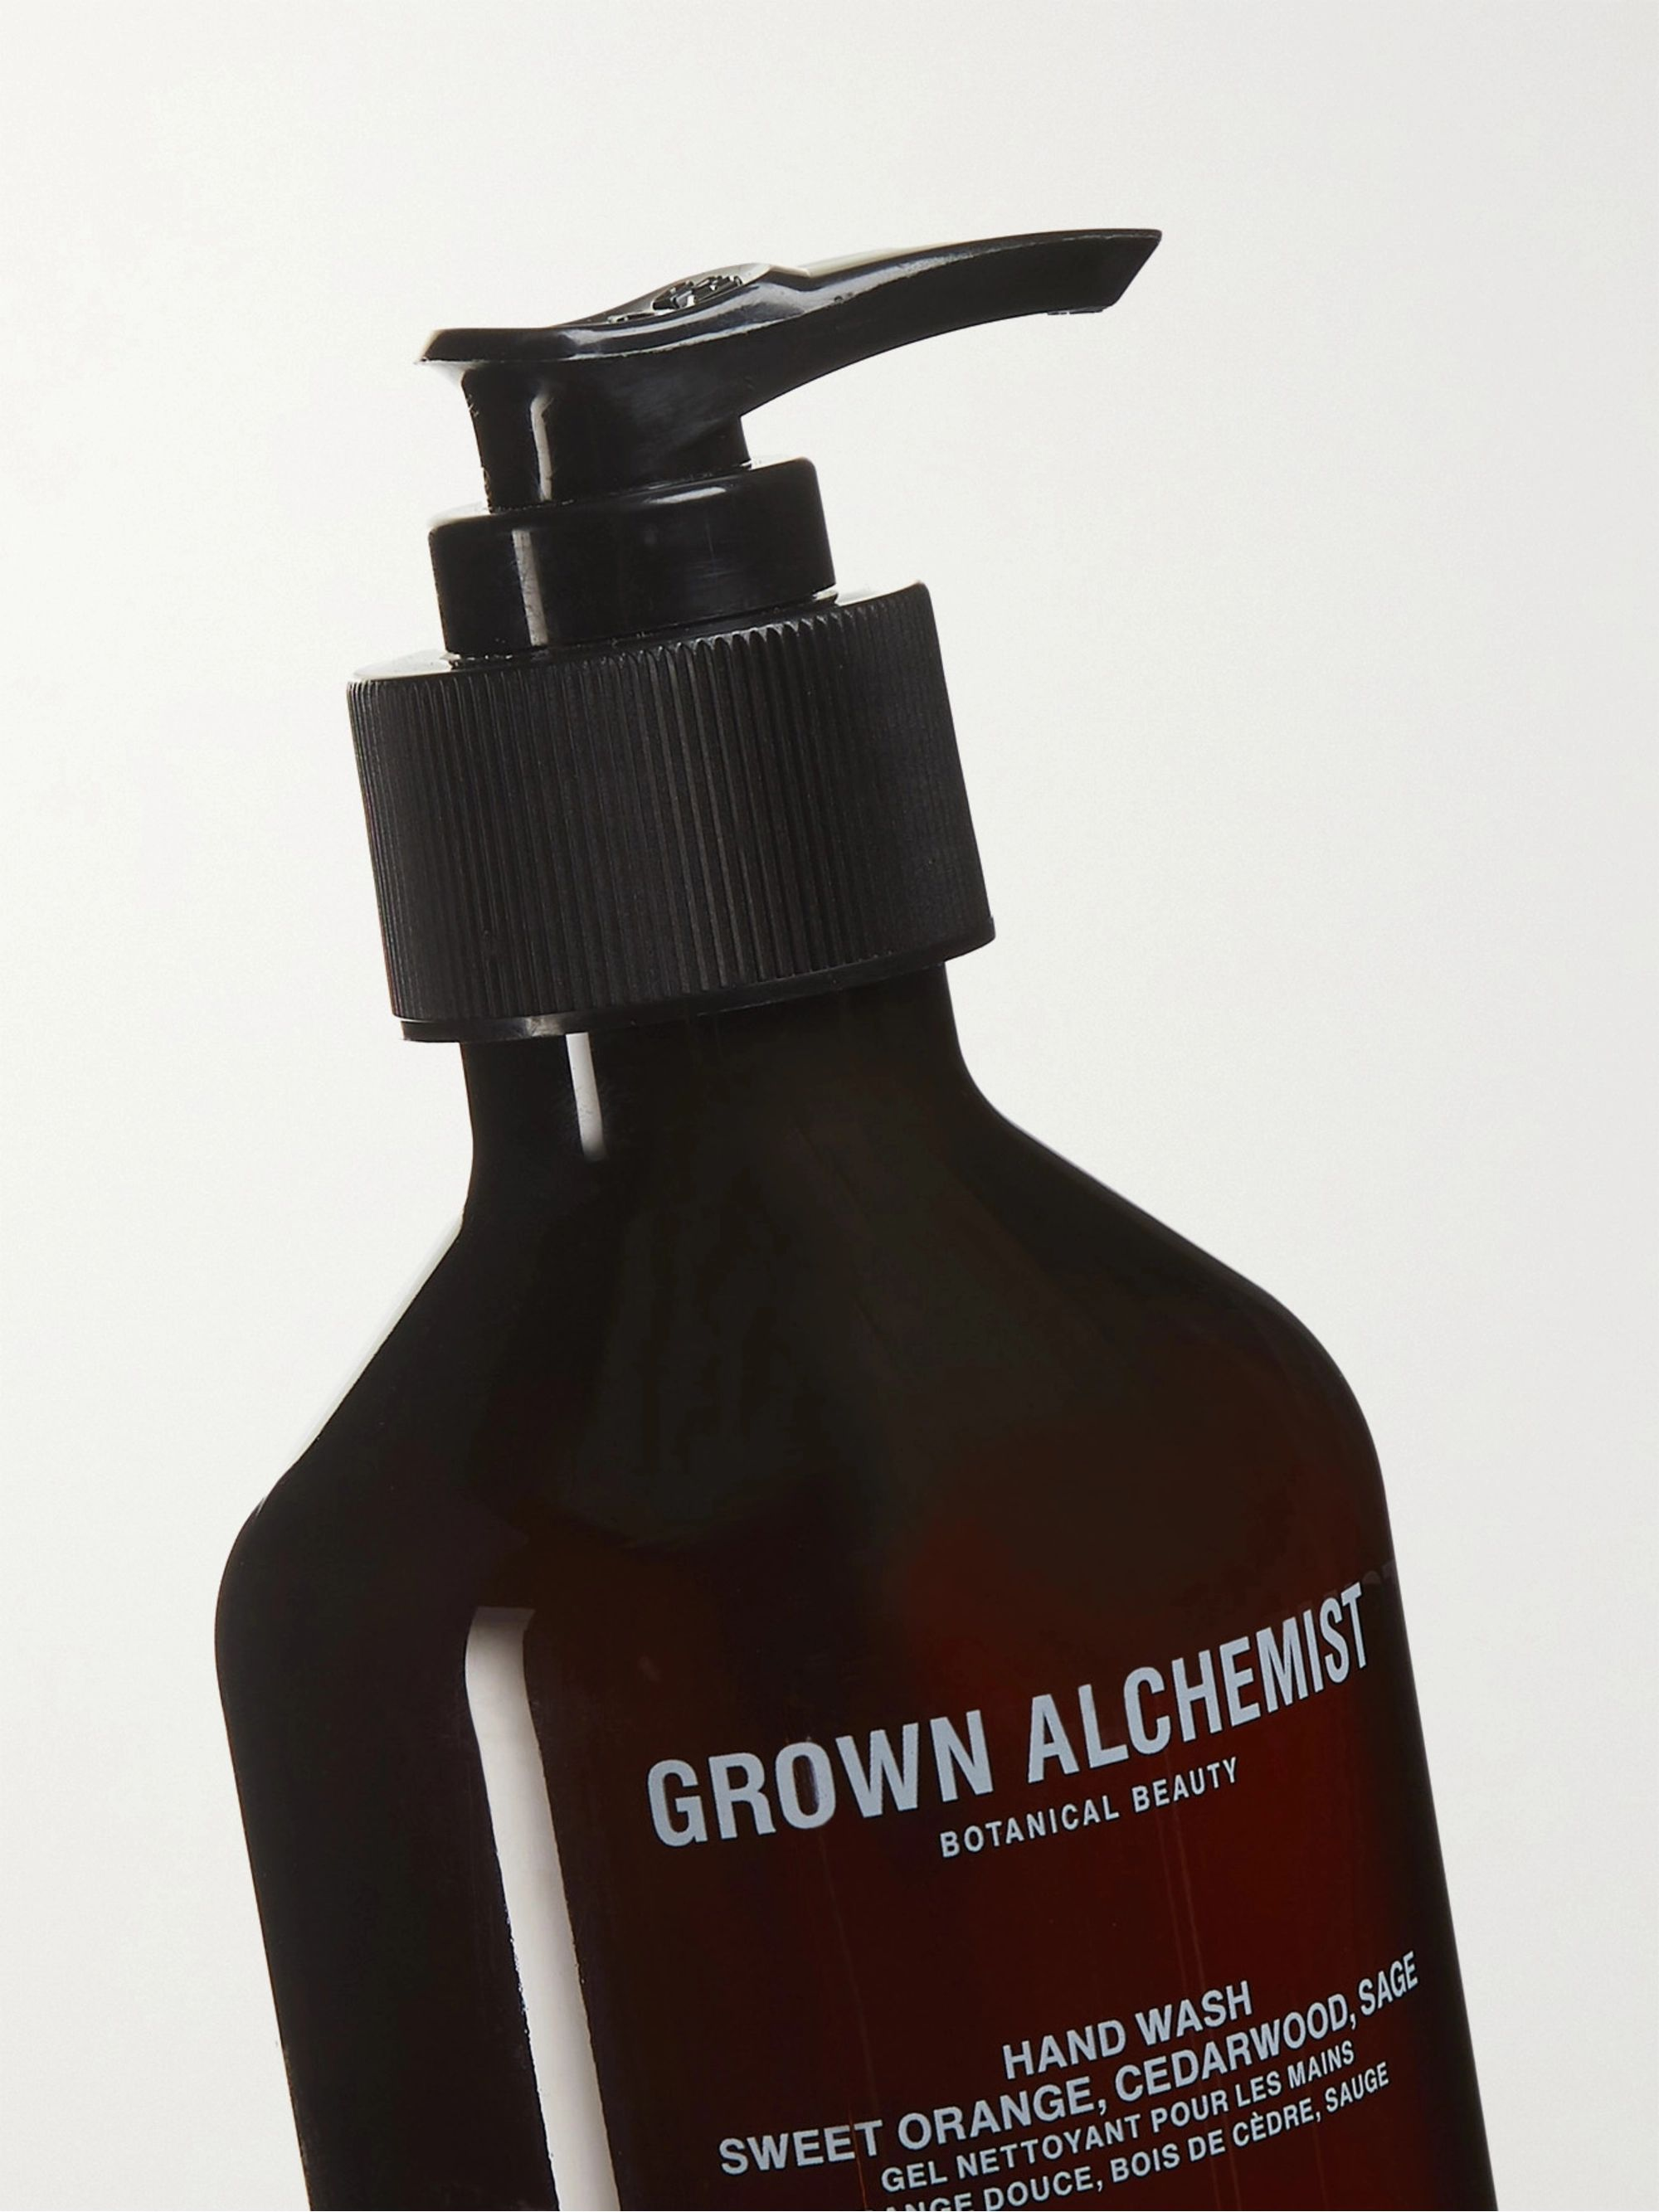 GROWN ALCHEMIST Hand Wash - Sweet Orange, Cedarwood & Sage, 300ml